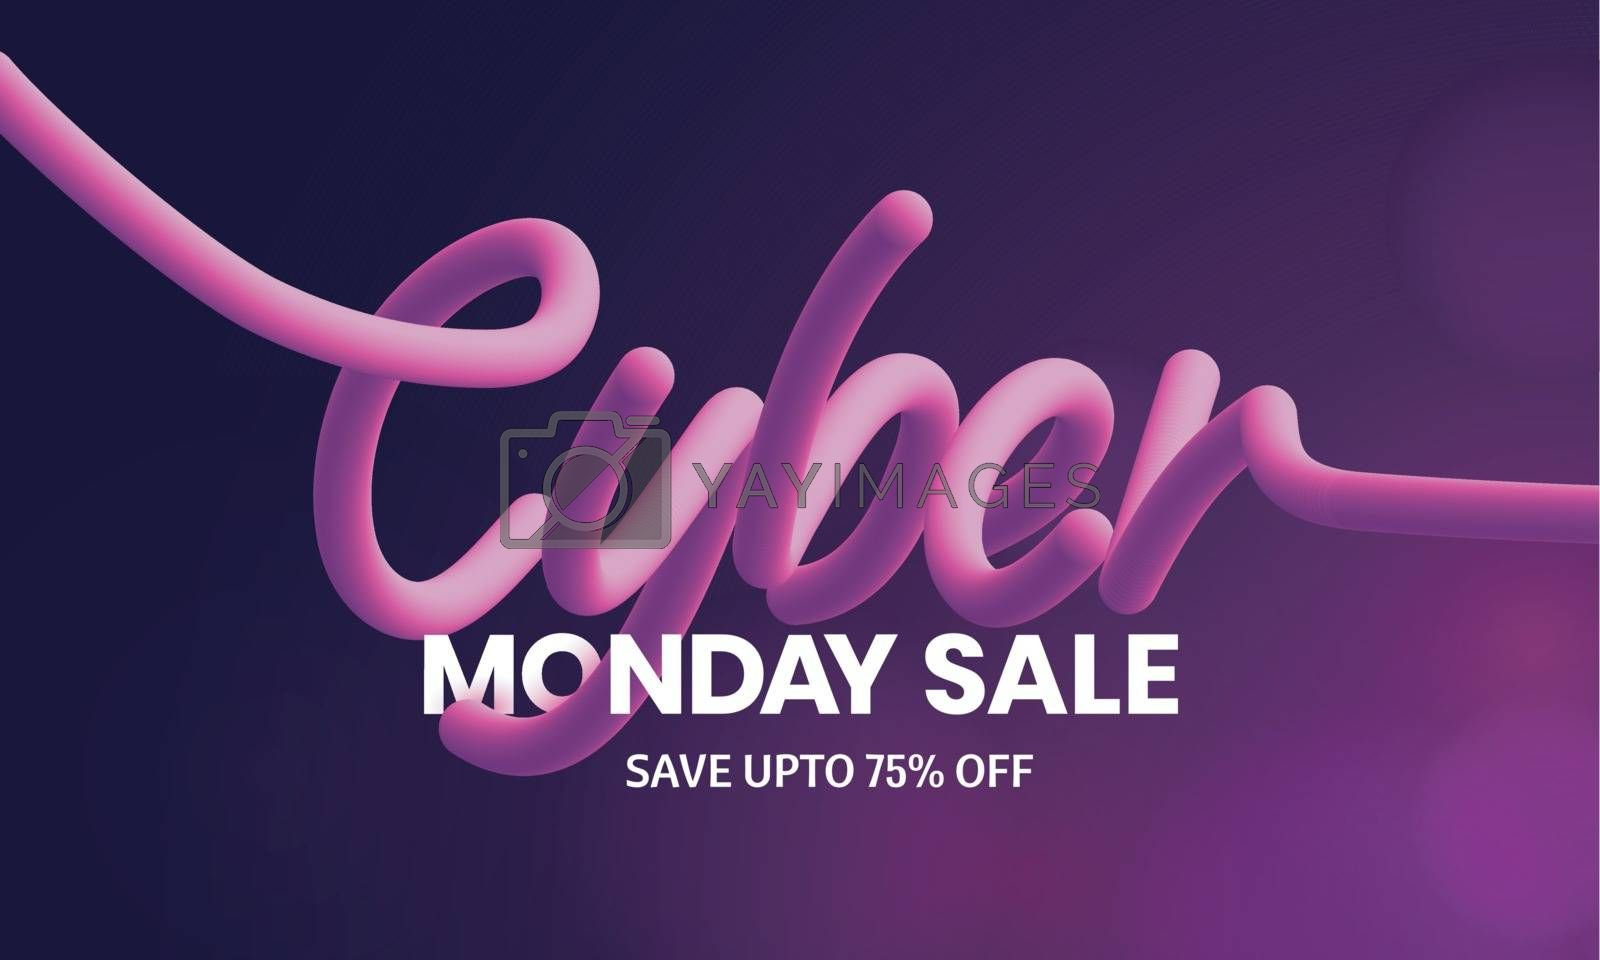 Creative, stylish lettering of Cyber on glossy purple background with 75% discount offer for sale poster or template design.